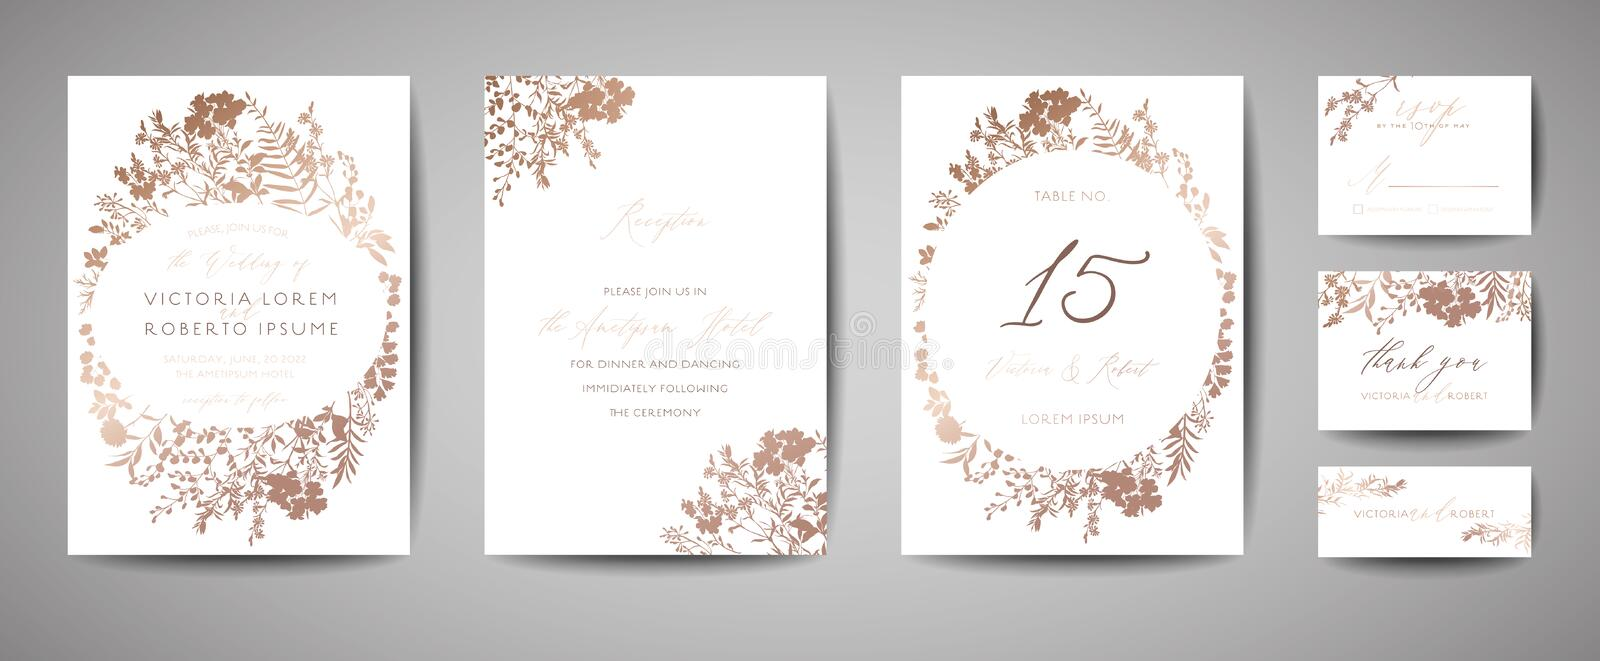 Luxury Wedding Save the Date, Invitation Cards Collection with Gold Foil Flowers and Leaves and Wreath. Vector trendy cover royalty free illustration